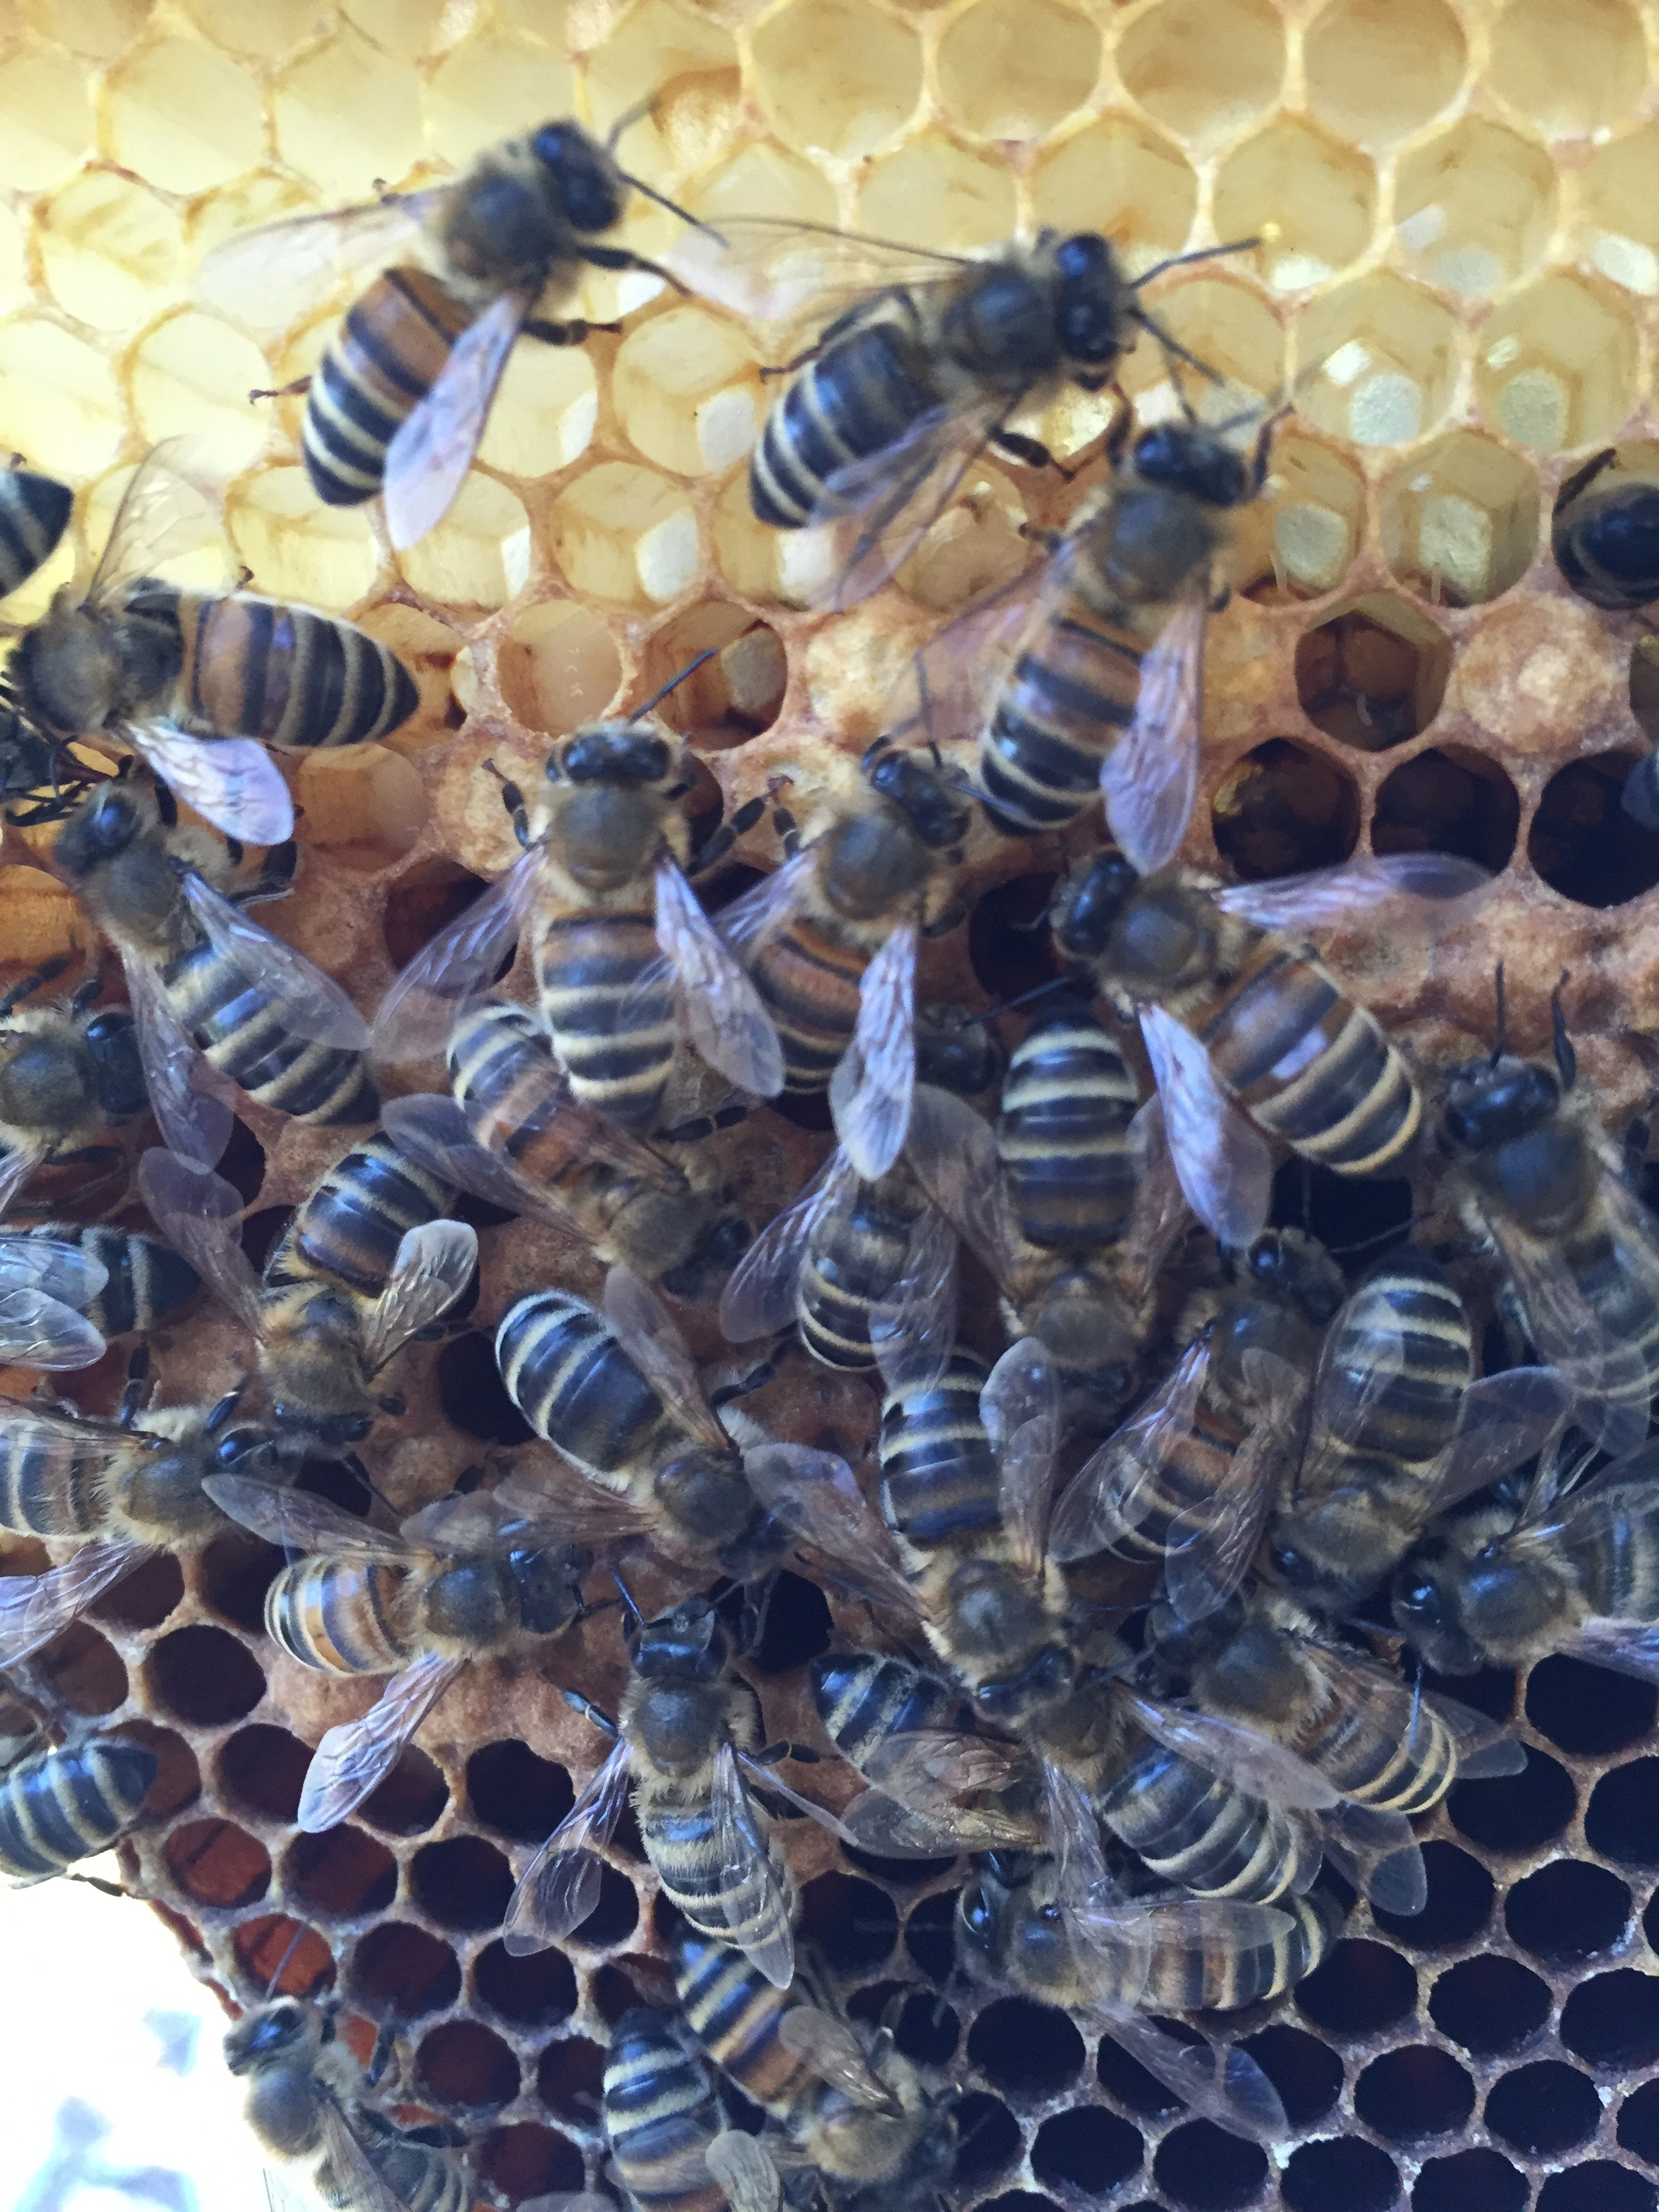 House bees working near the brood